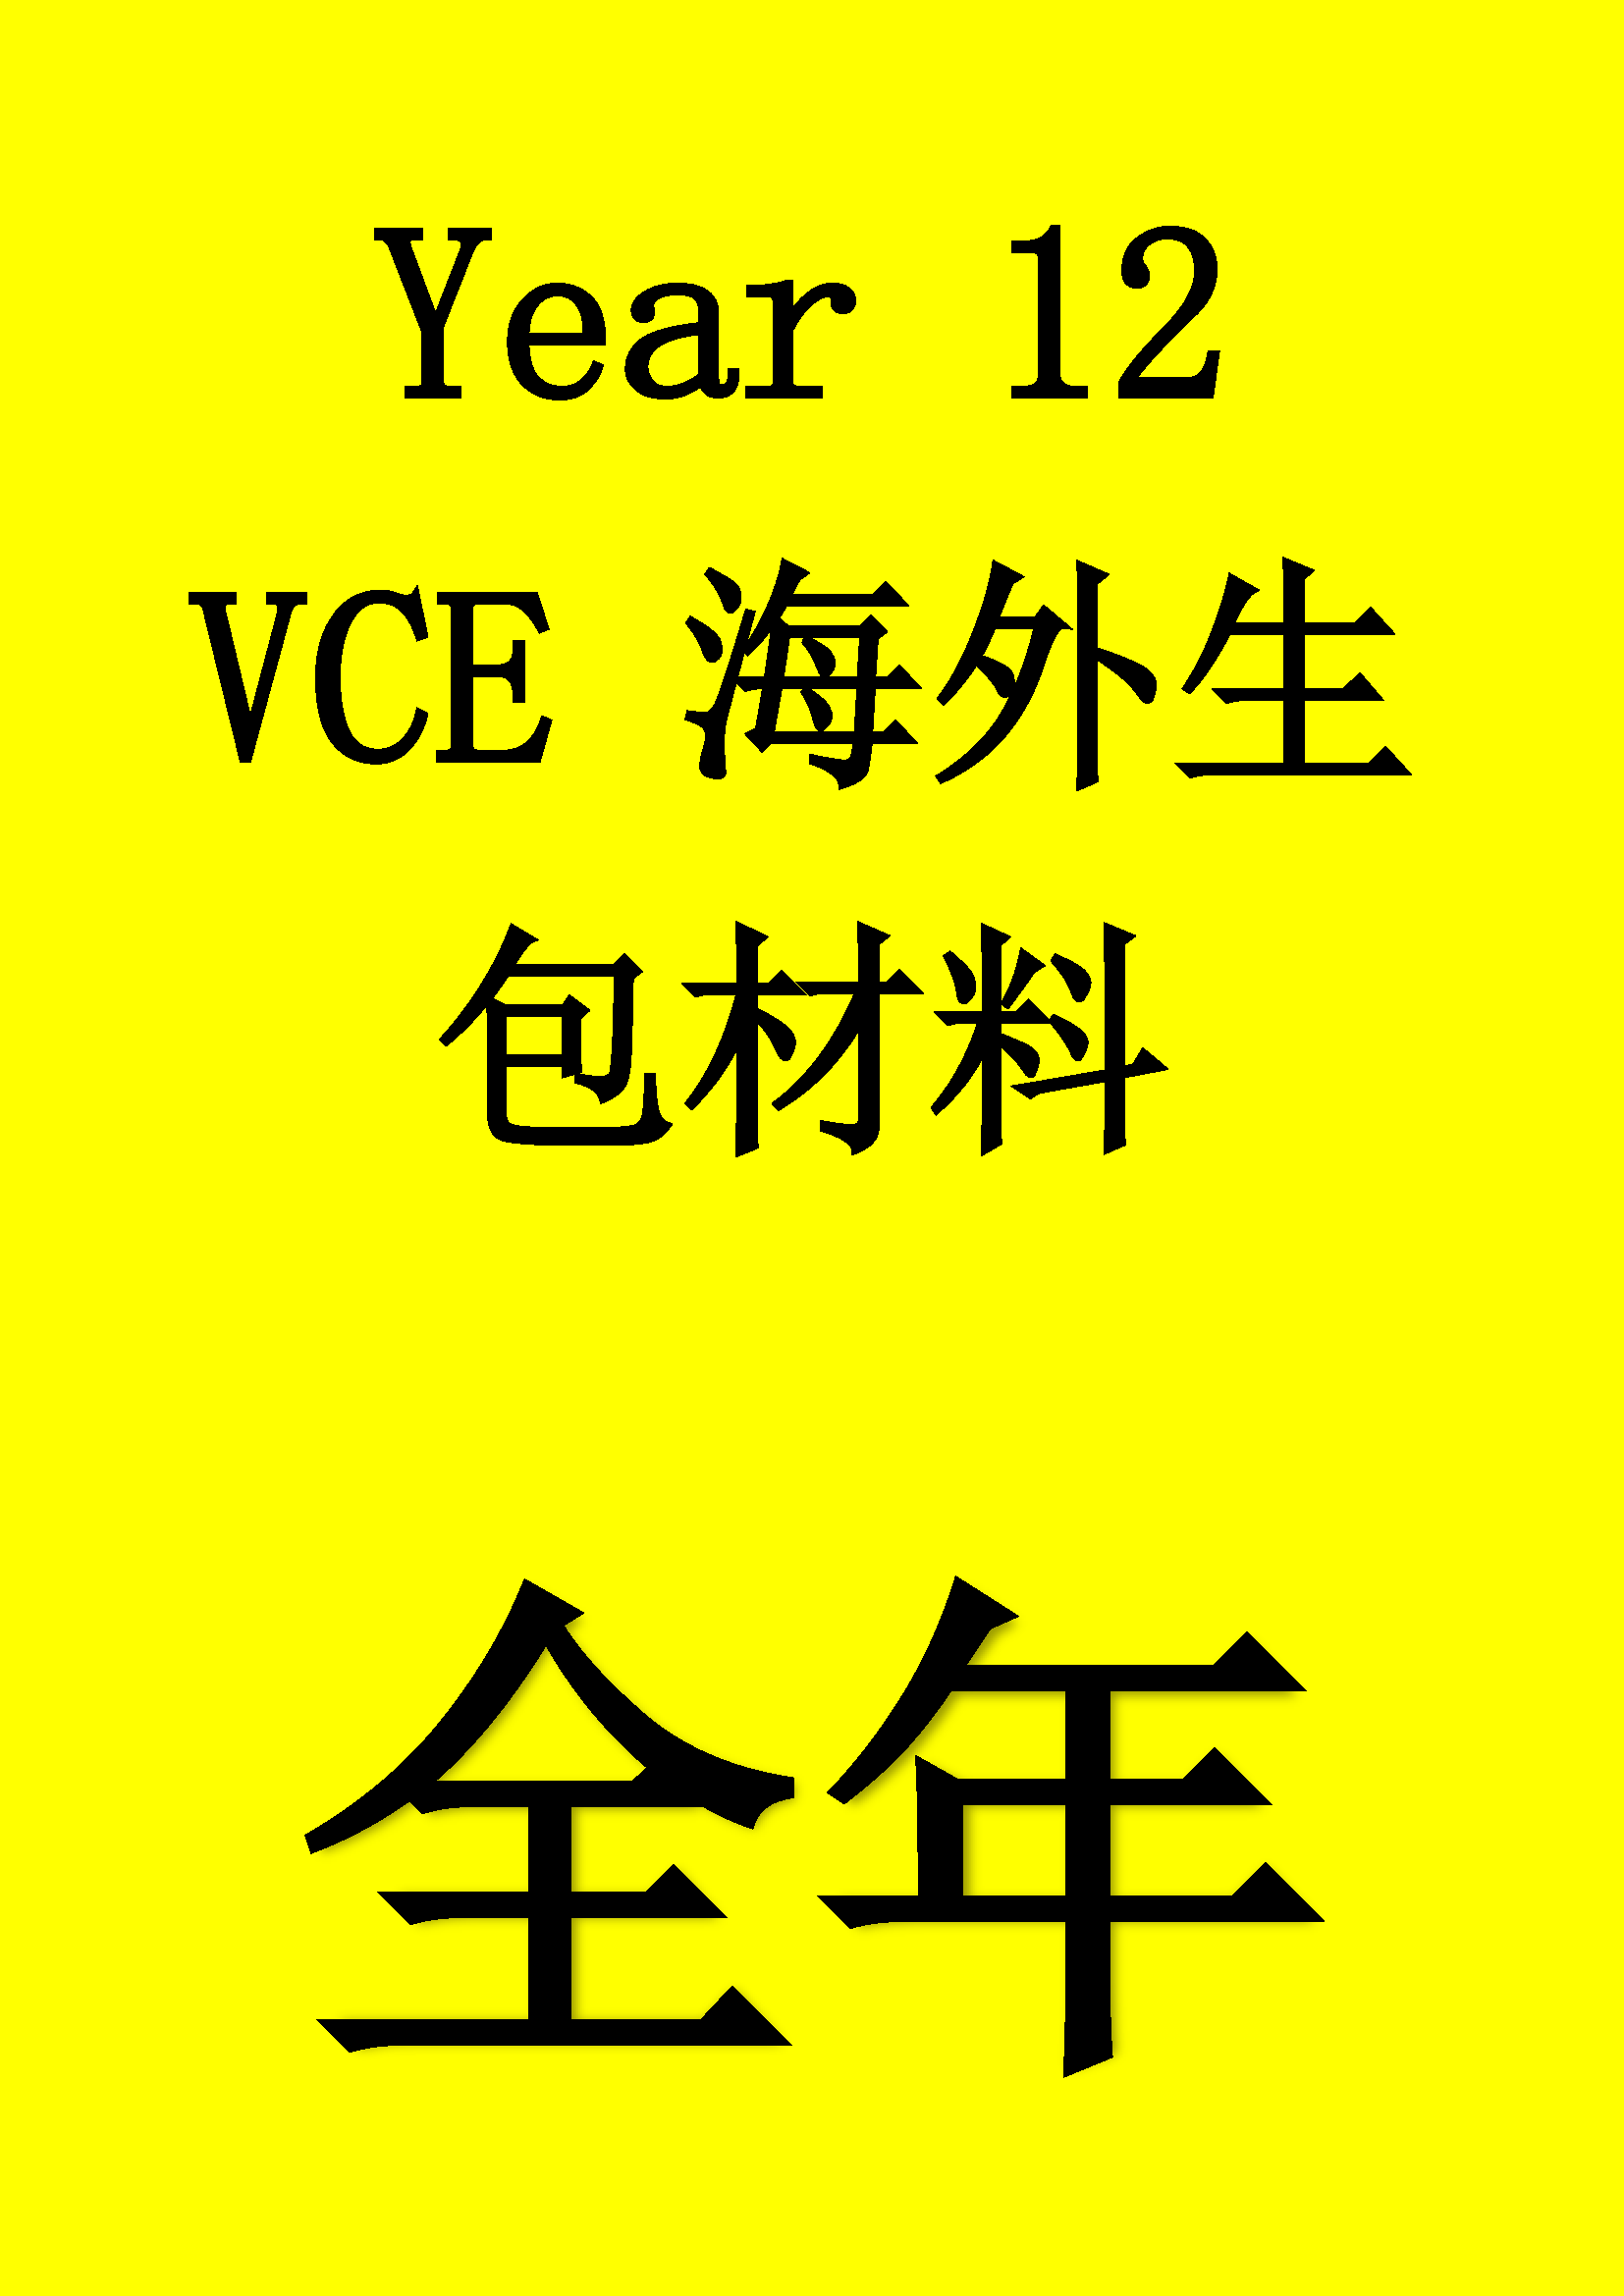 VCE Chinese Year 12 Oversea Student Full year